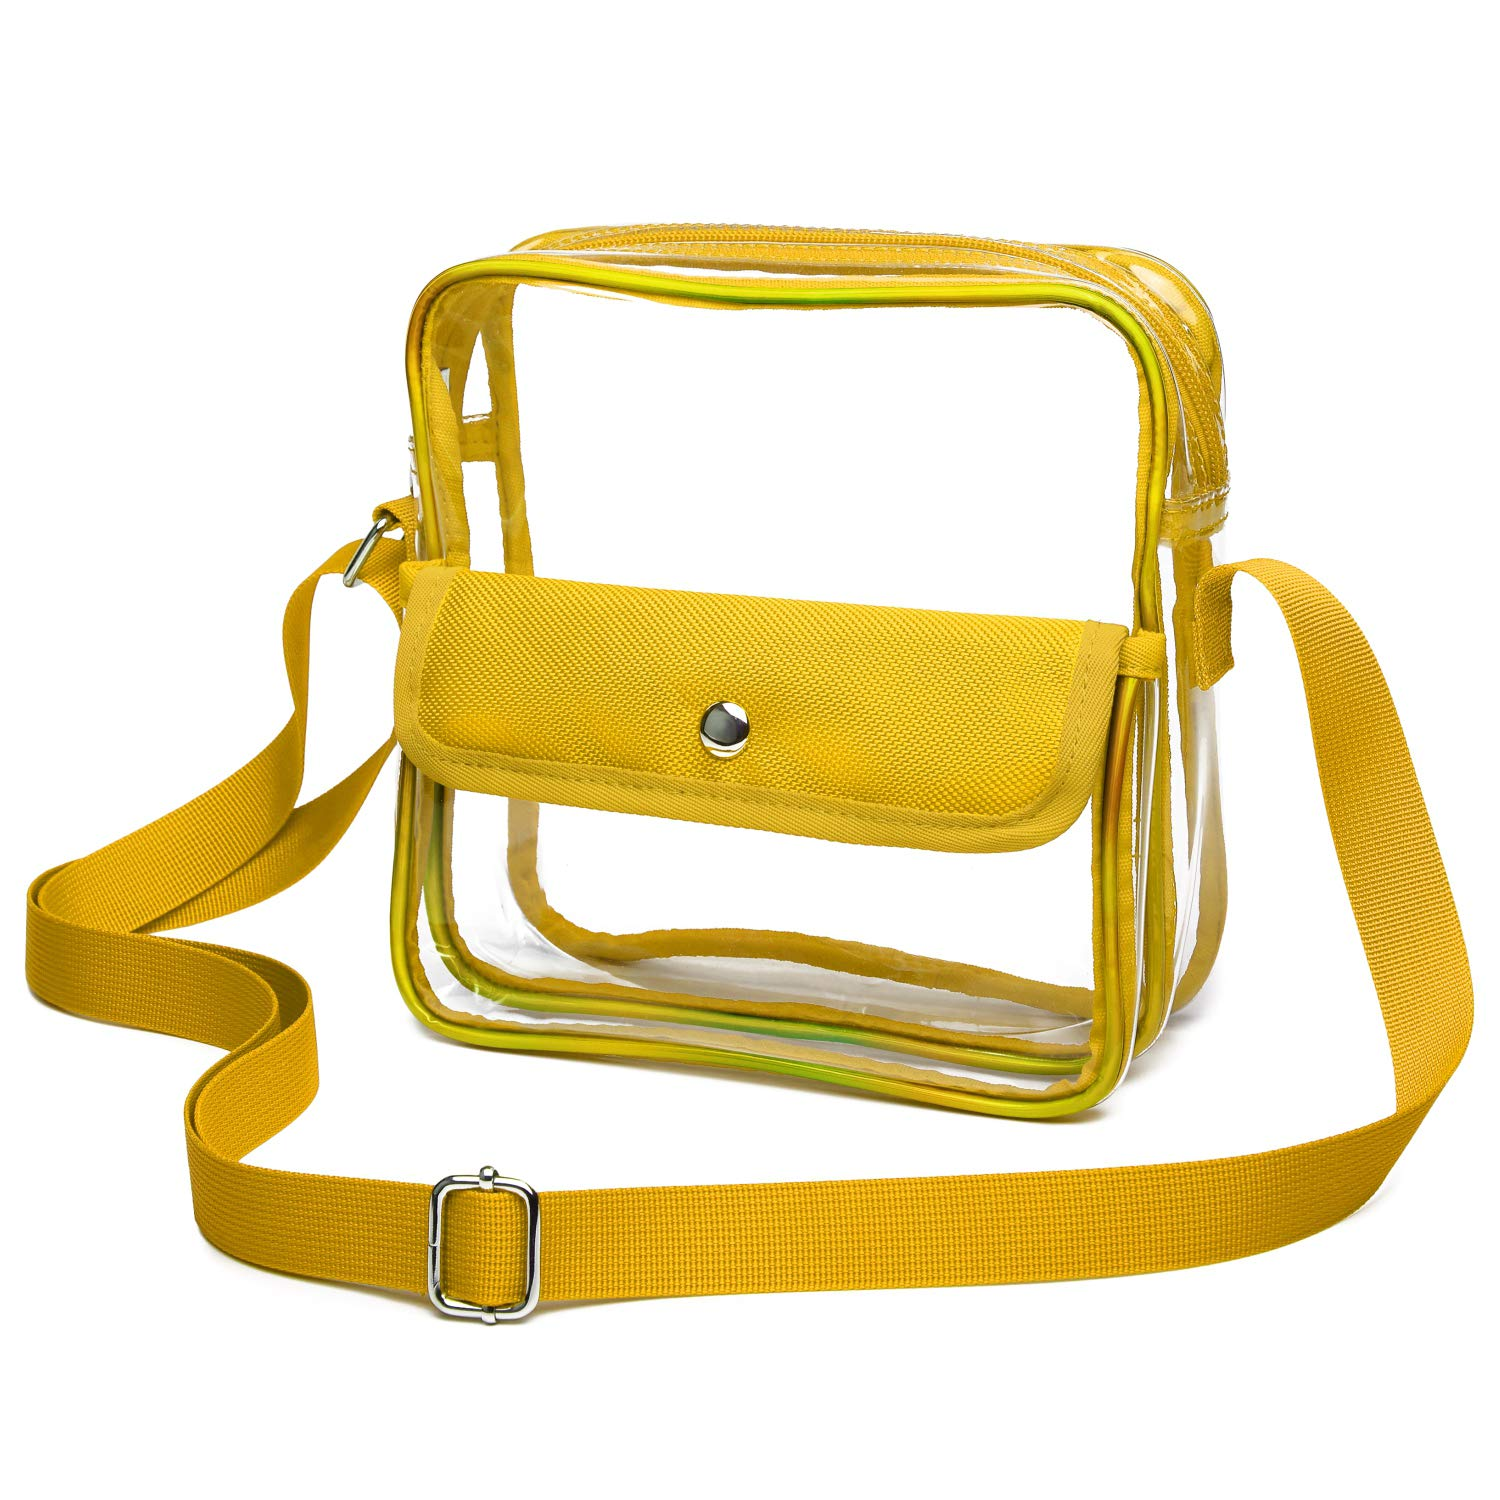 iSPECLE Clear Purse, Clear Stadium Bag Approved for NFL, PGA, NCAA, Adjustable 4.92ft Shoulder Strap for Women Girl Yellow